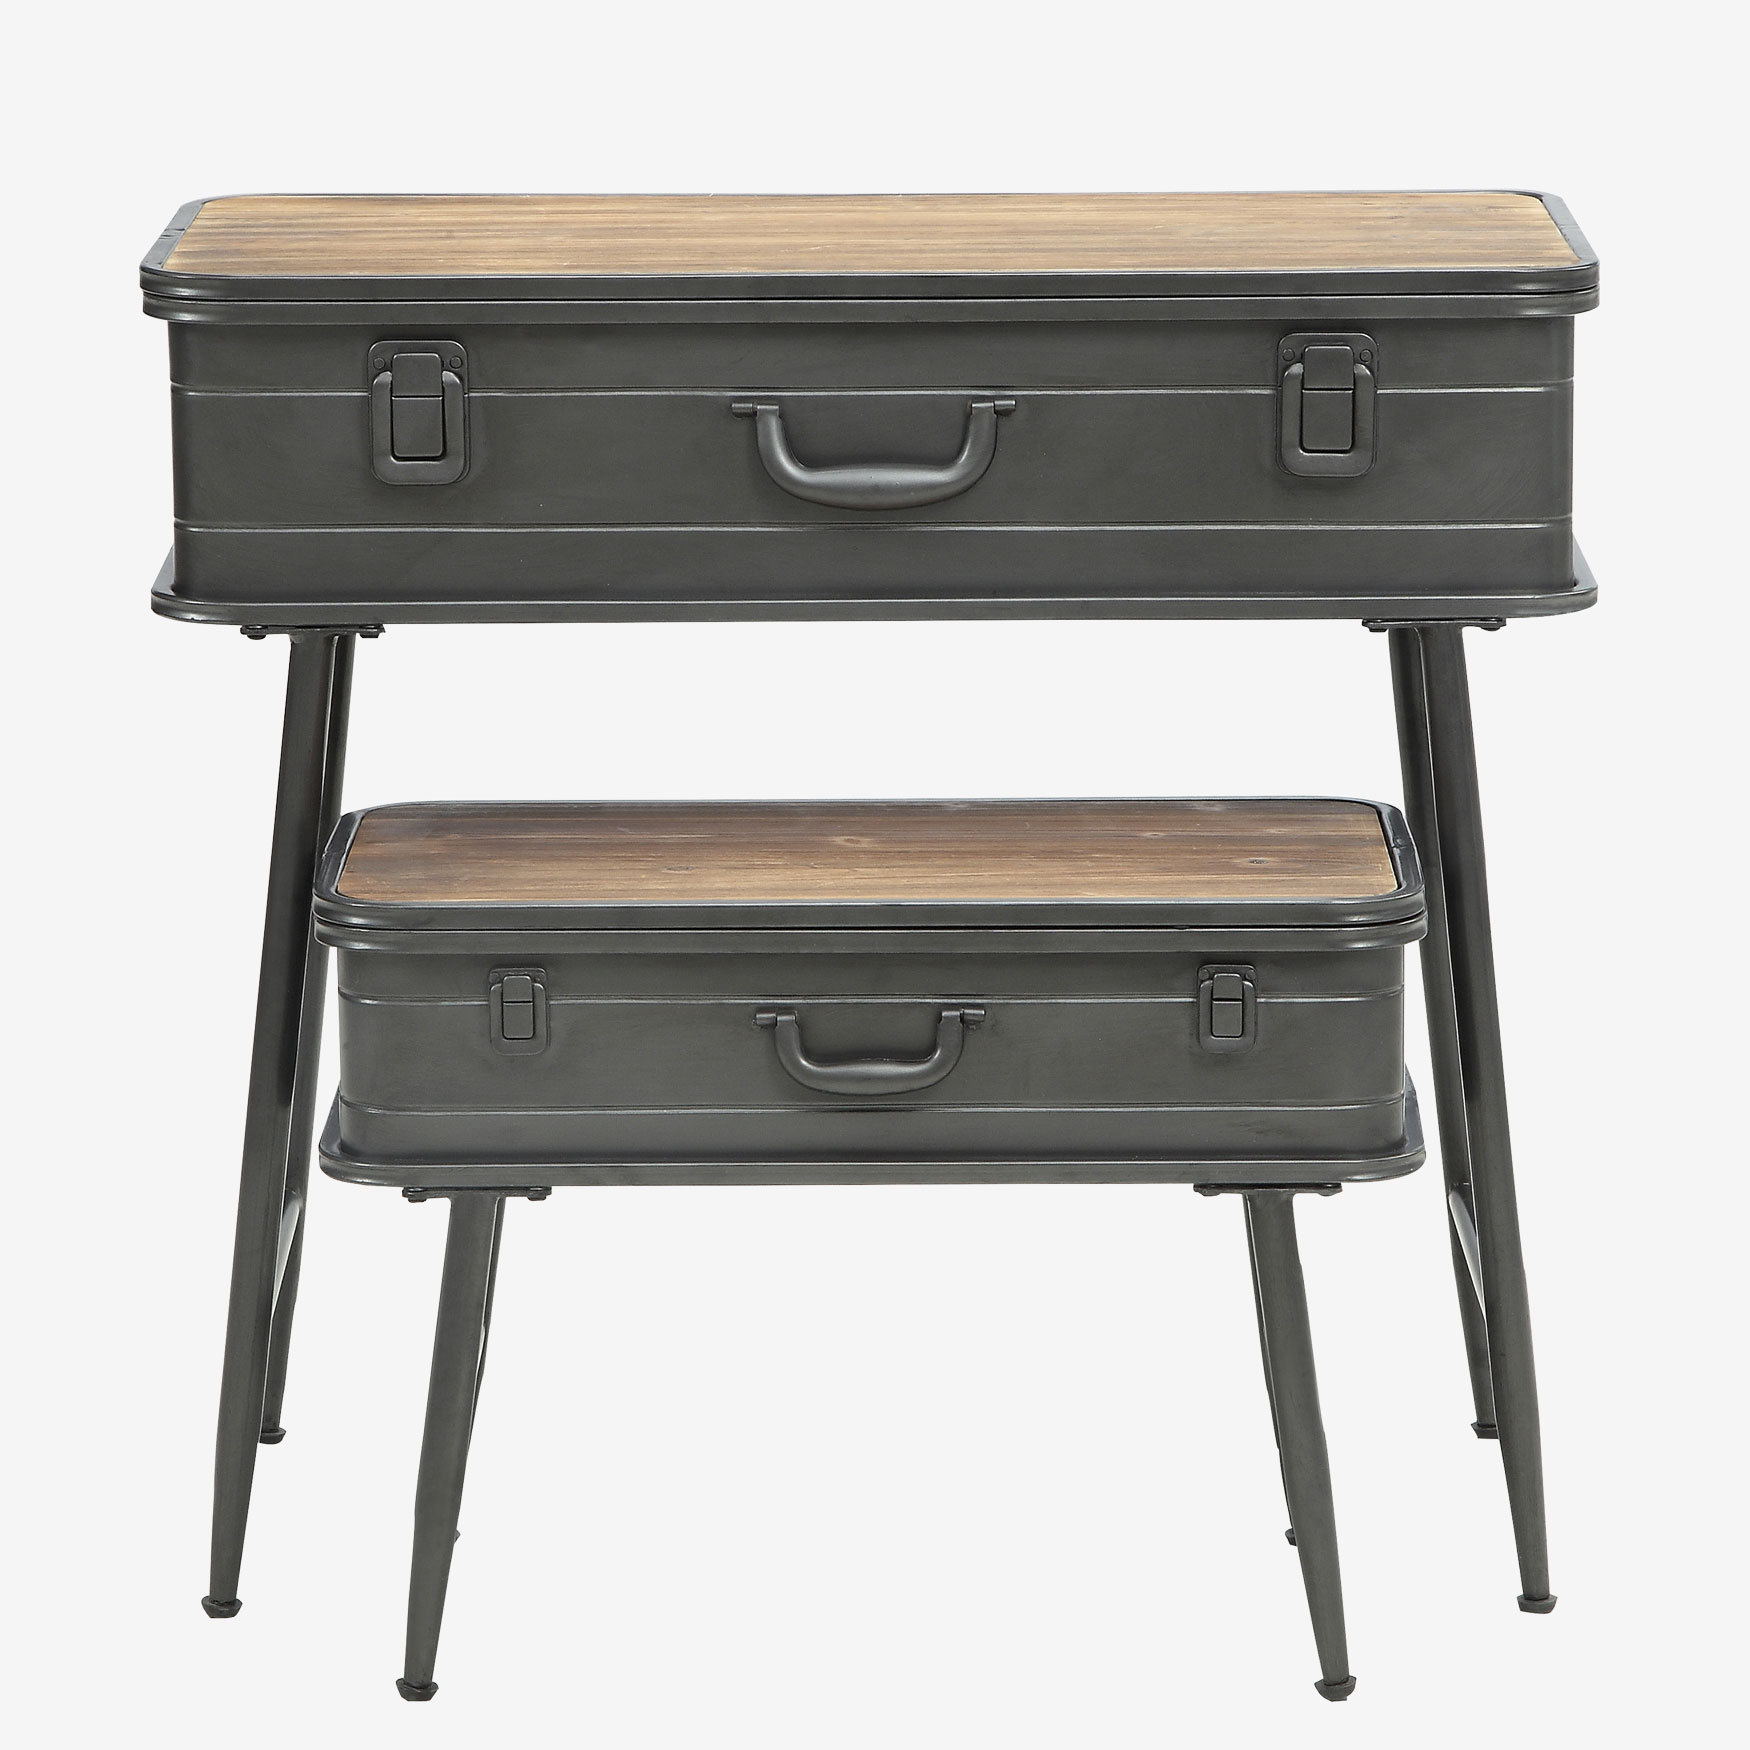 Urban Loft Metal 2 Trunk Tables, NATURAL WOOD